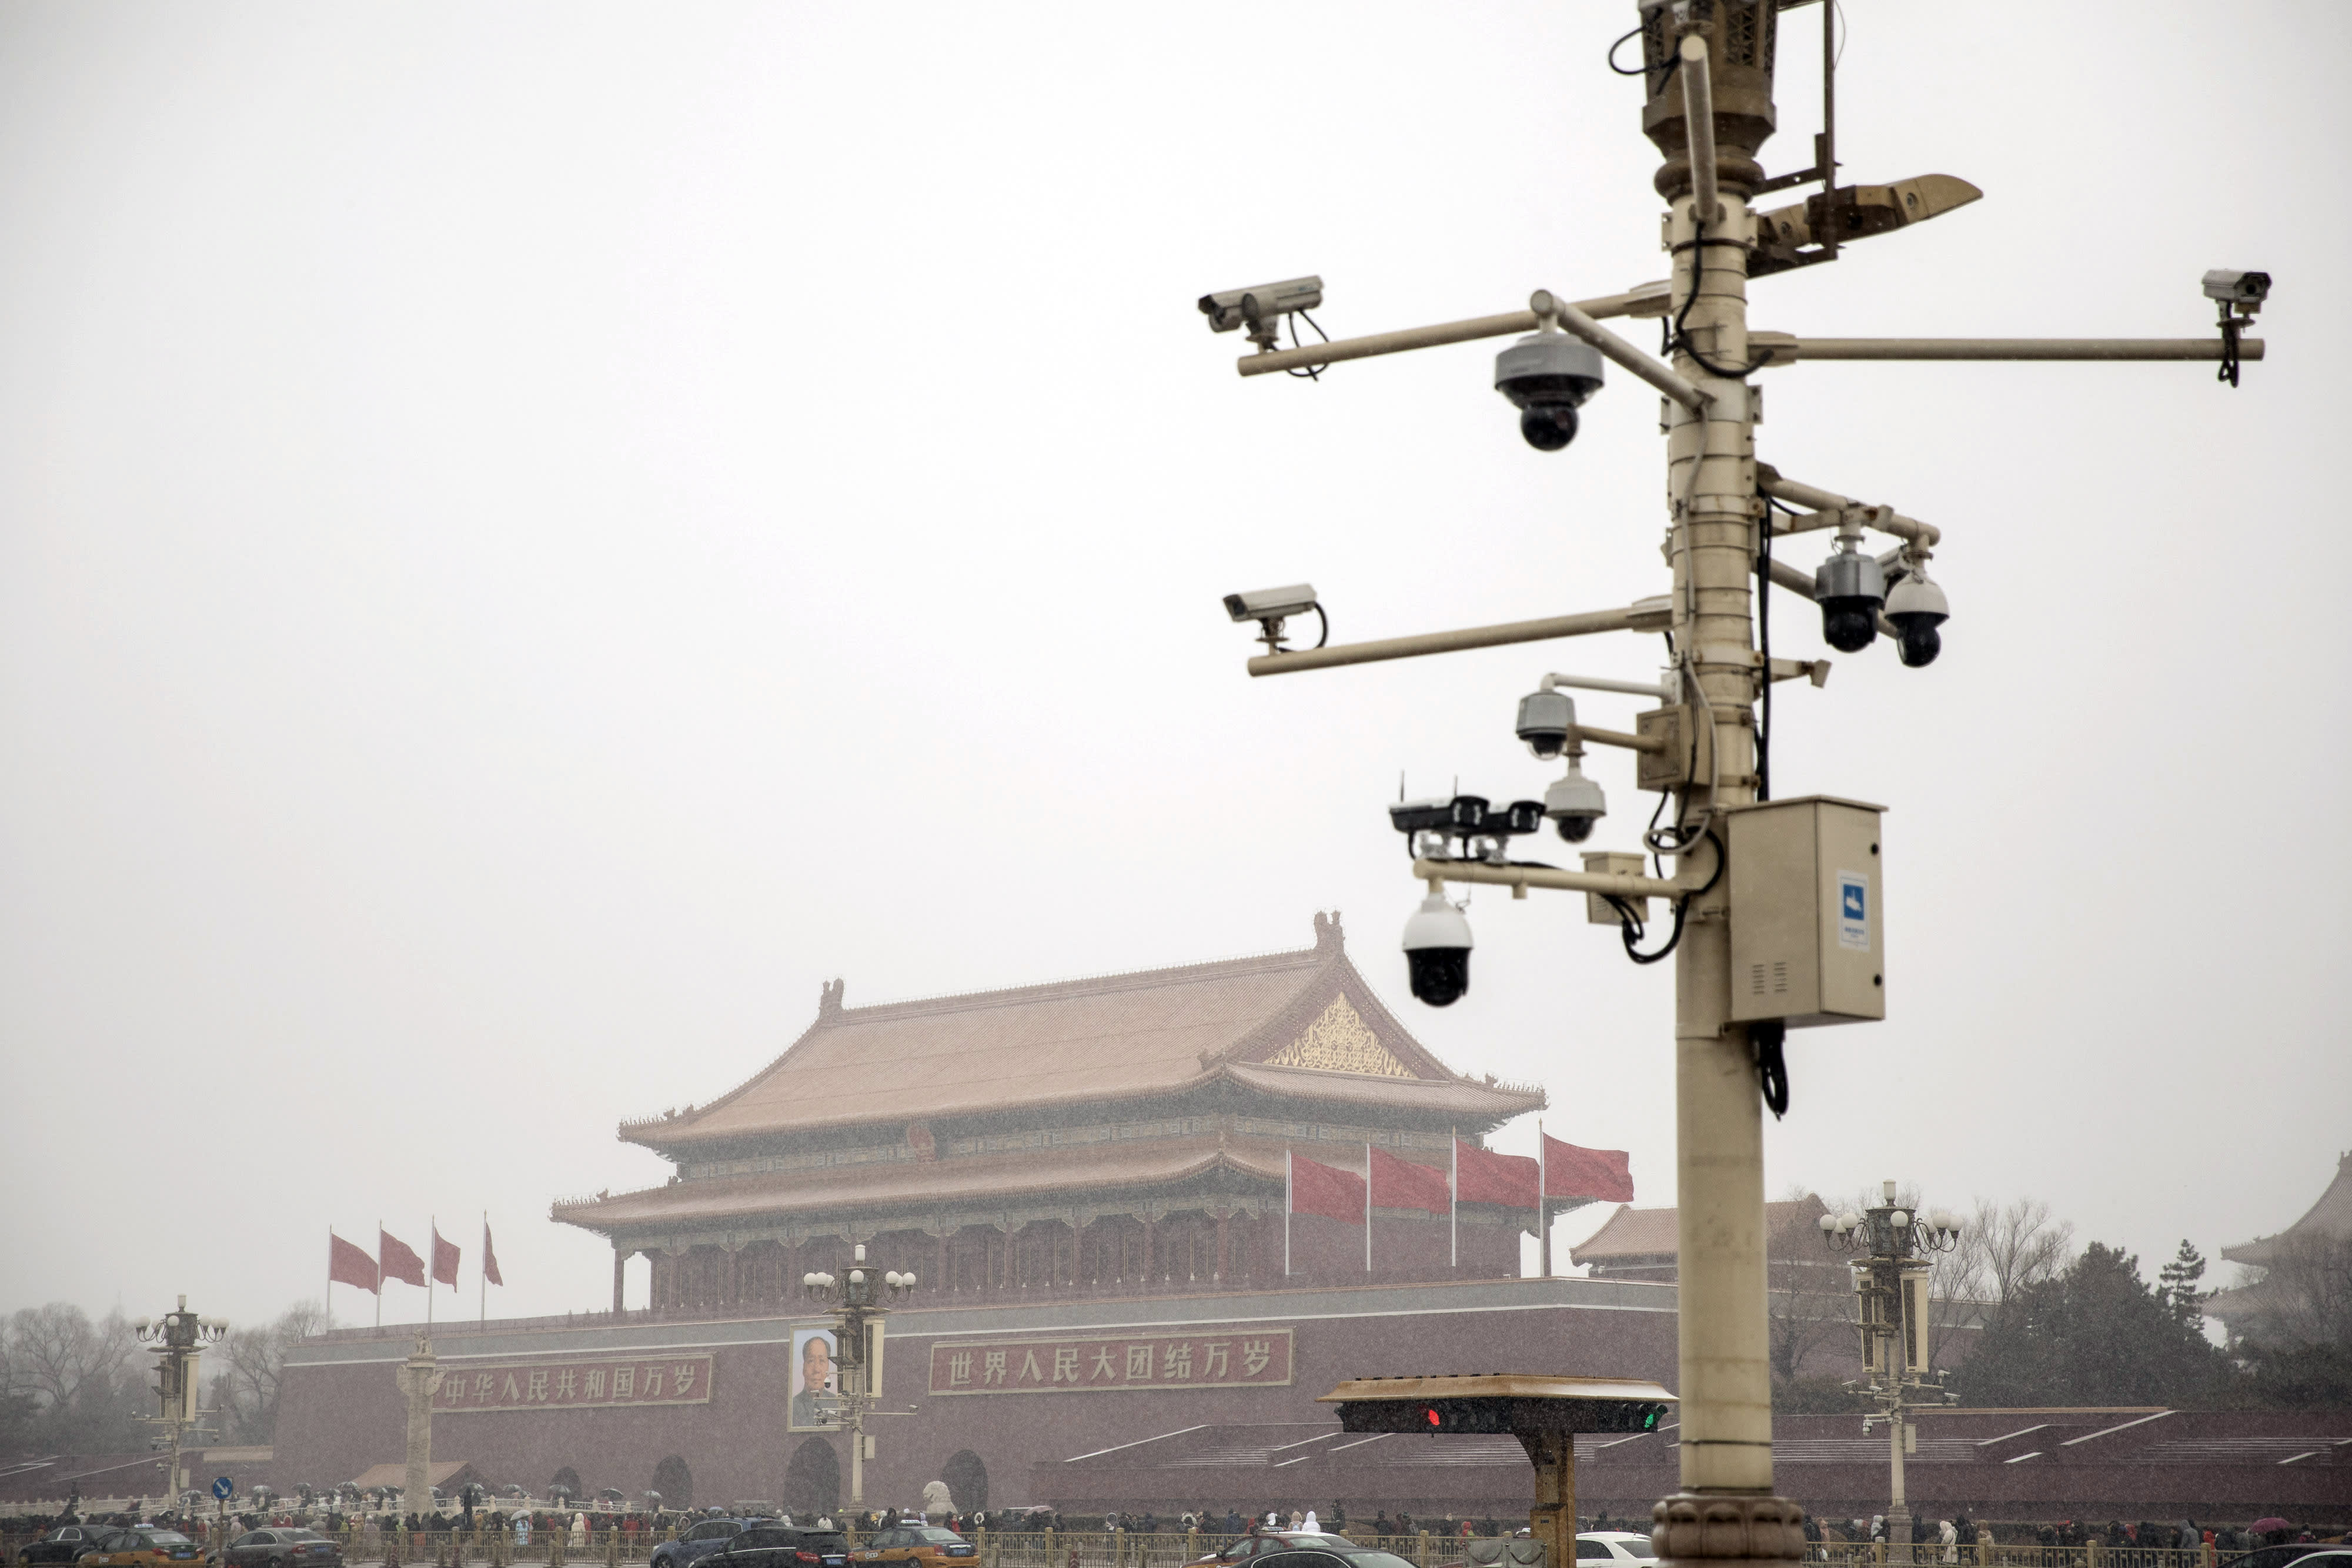 China's surveillance tech is spreading globally, raising concerns about Beijing's influence